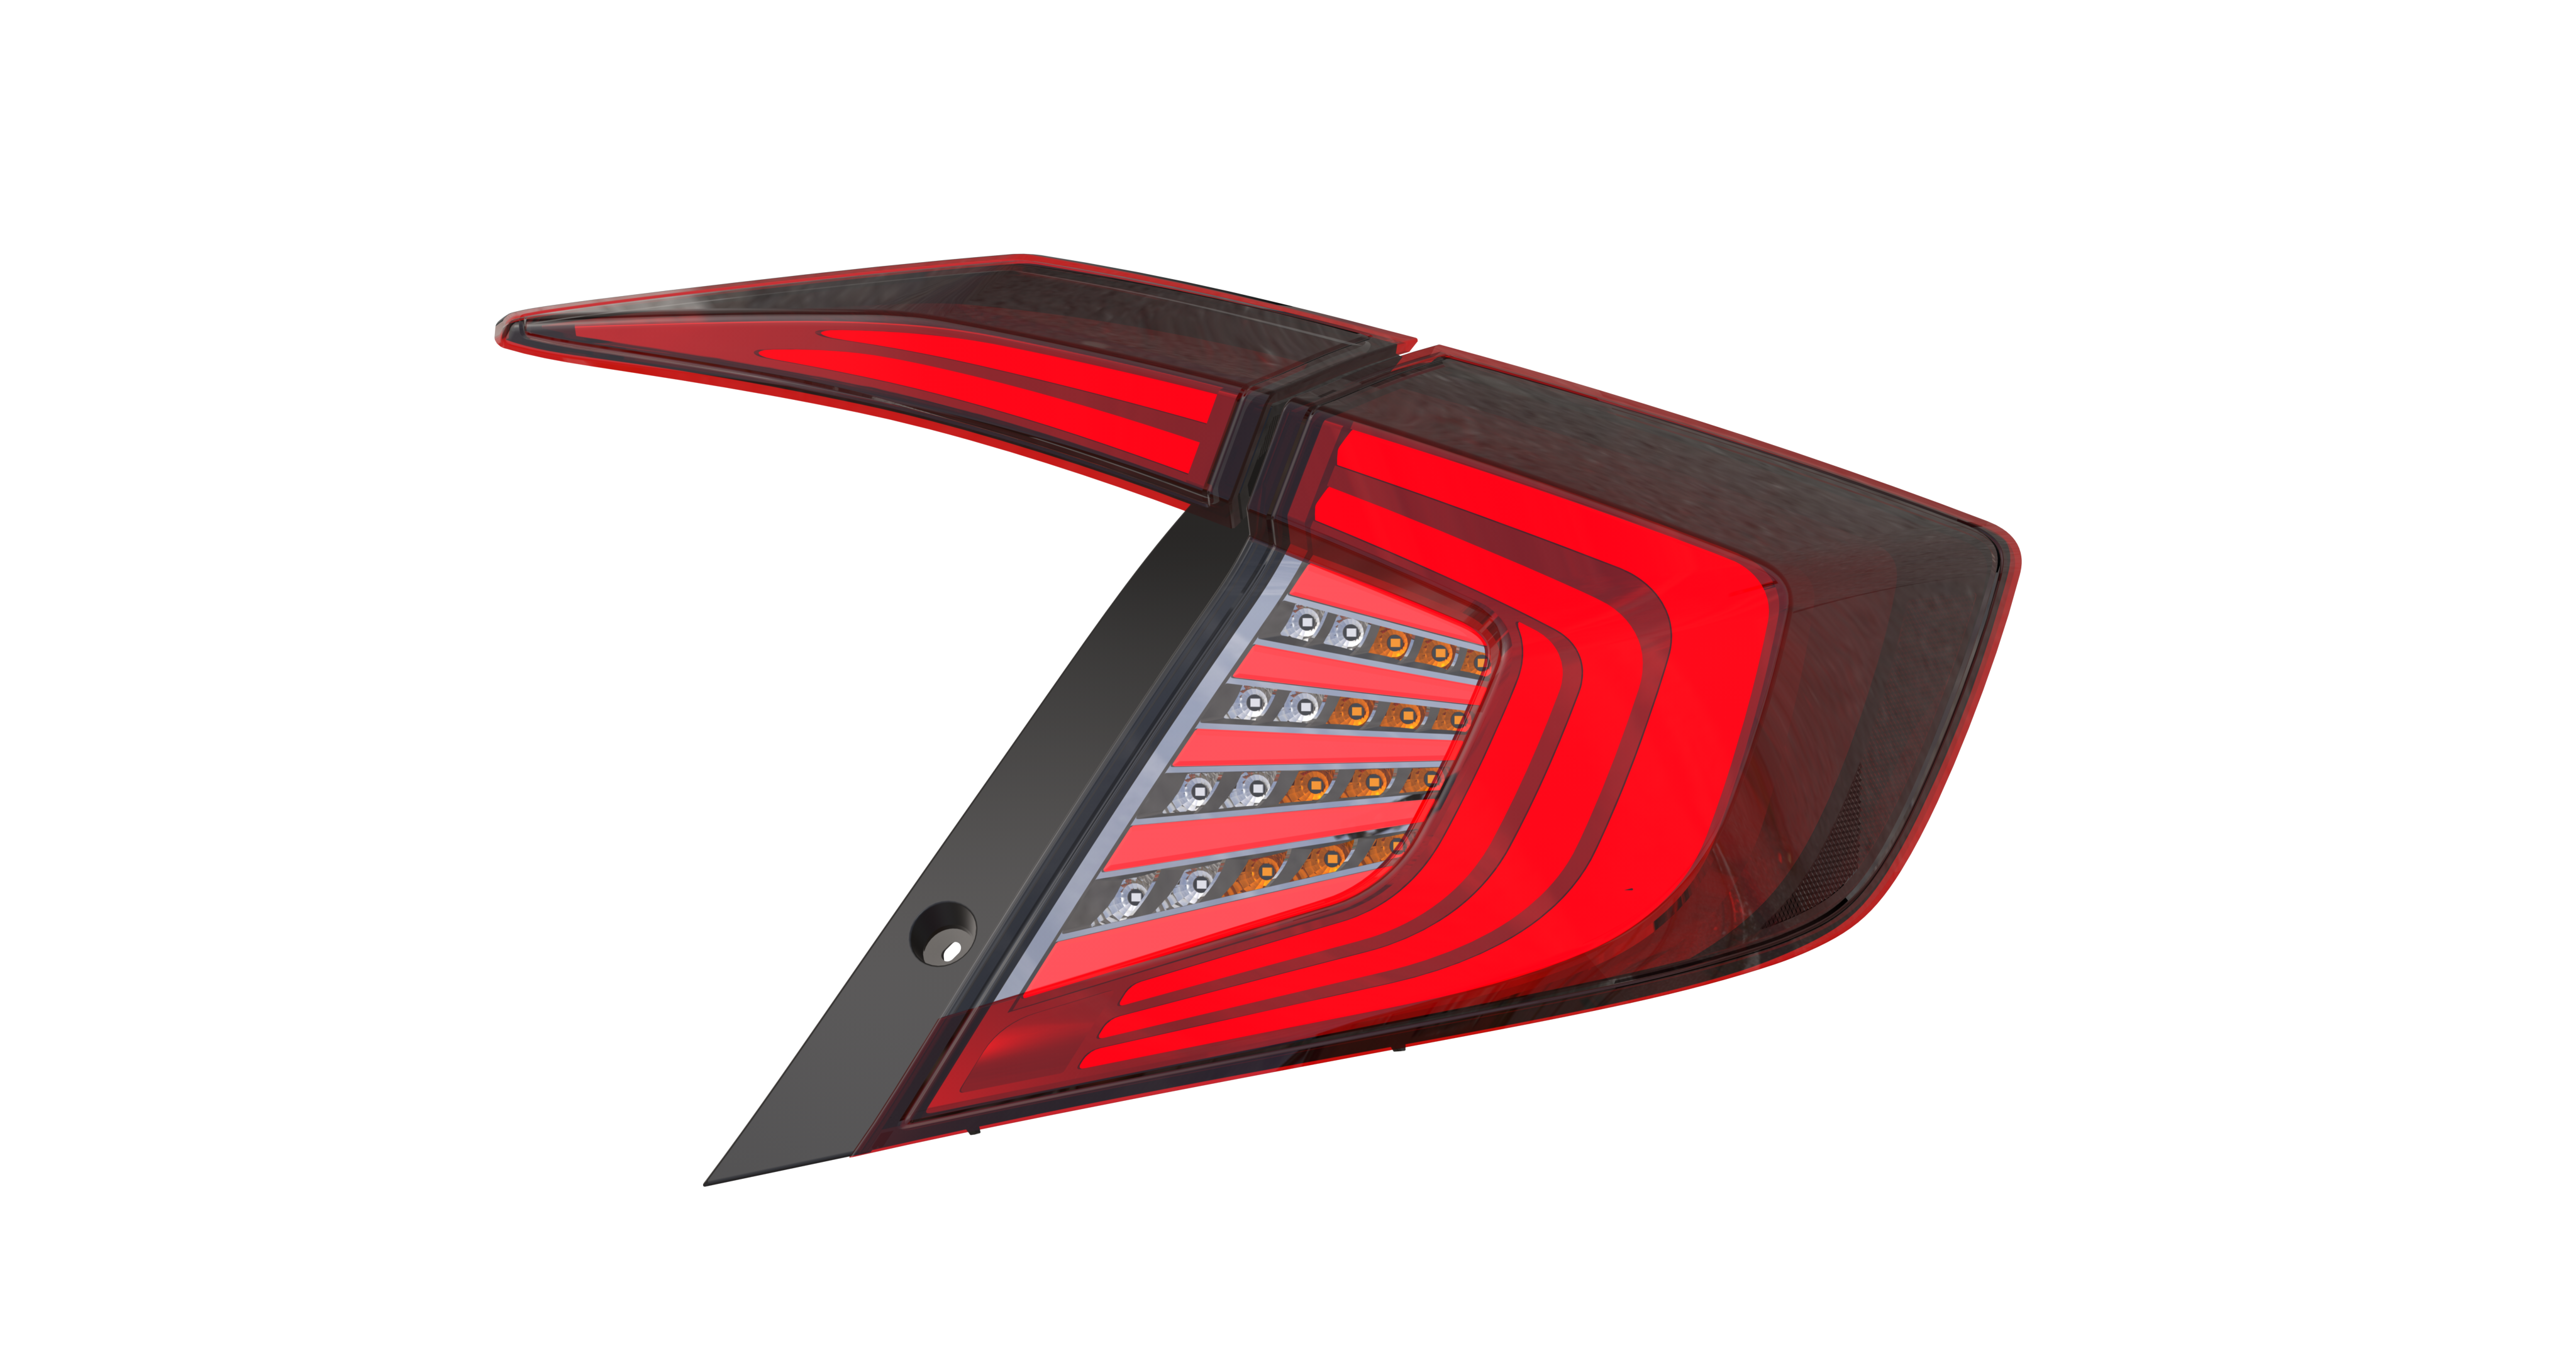 The Item Is Vland Honda Civic Tail Lamp The Color Is Red And Smoked Vland Carlamp Ledtaillight Ledtaillamp Honda Honda Honda City Honda Civic Red Smoke